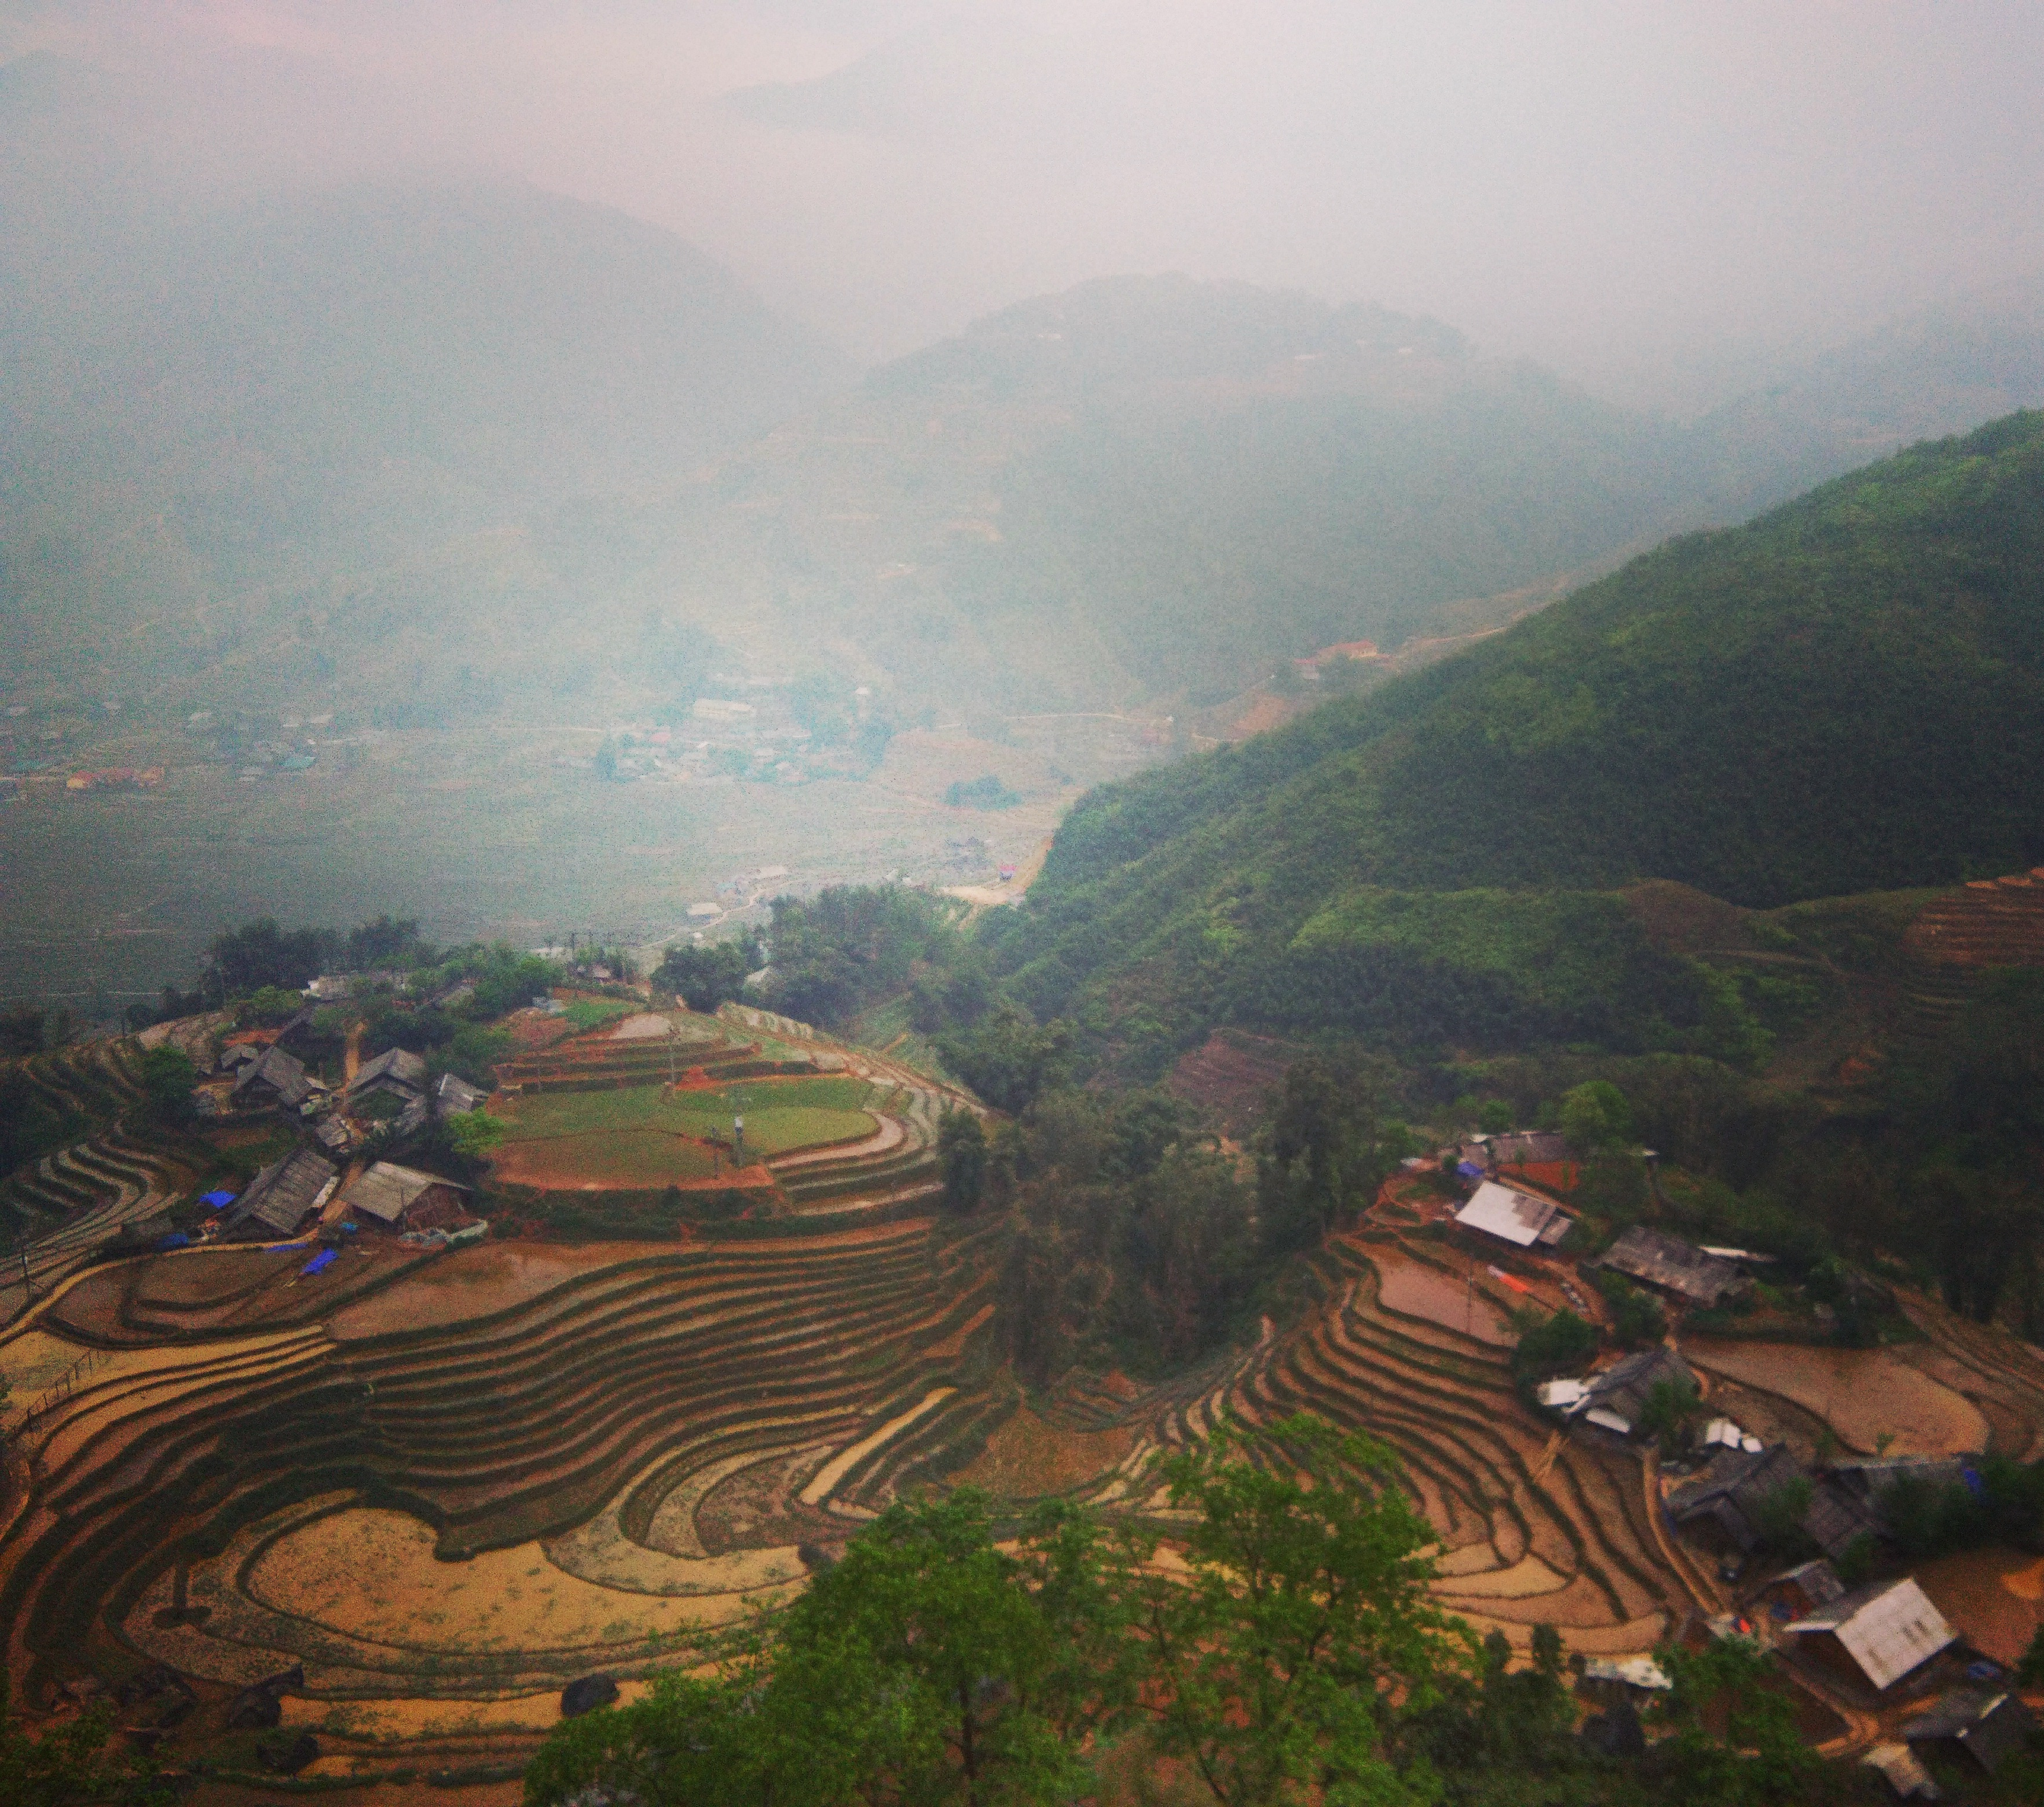 Terrace farming in the villages near Sapa Vietnam www.knowntoventure.com